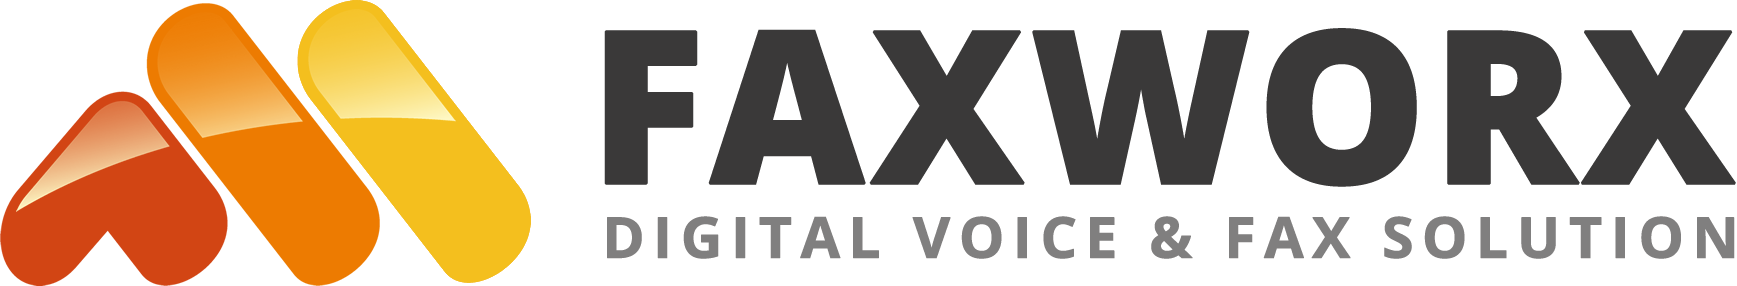 FaxWorx - Voice to Email / Email to Fax